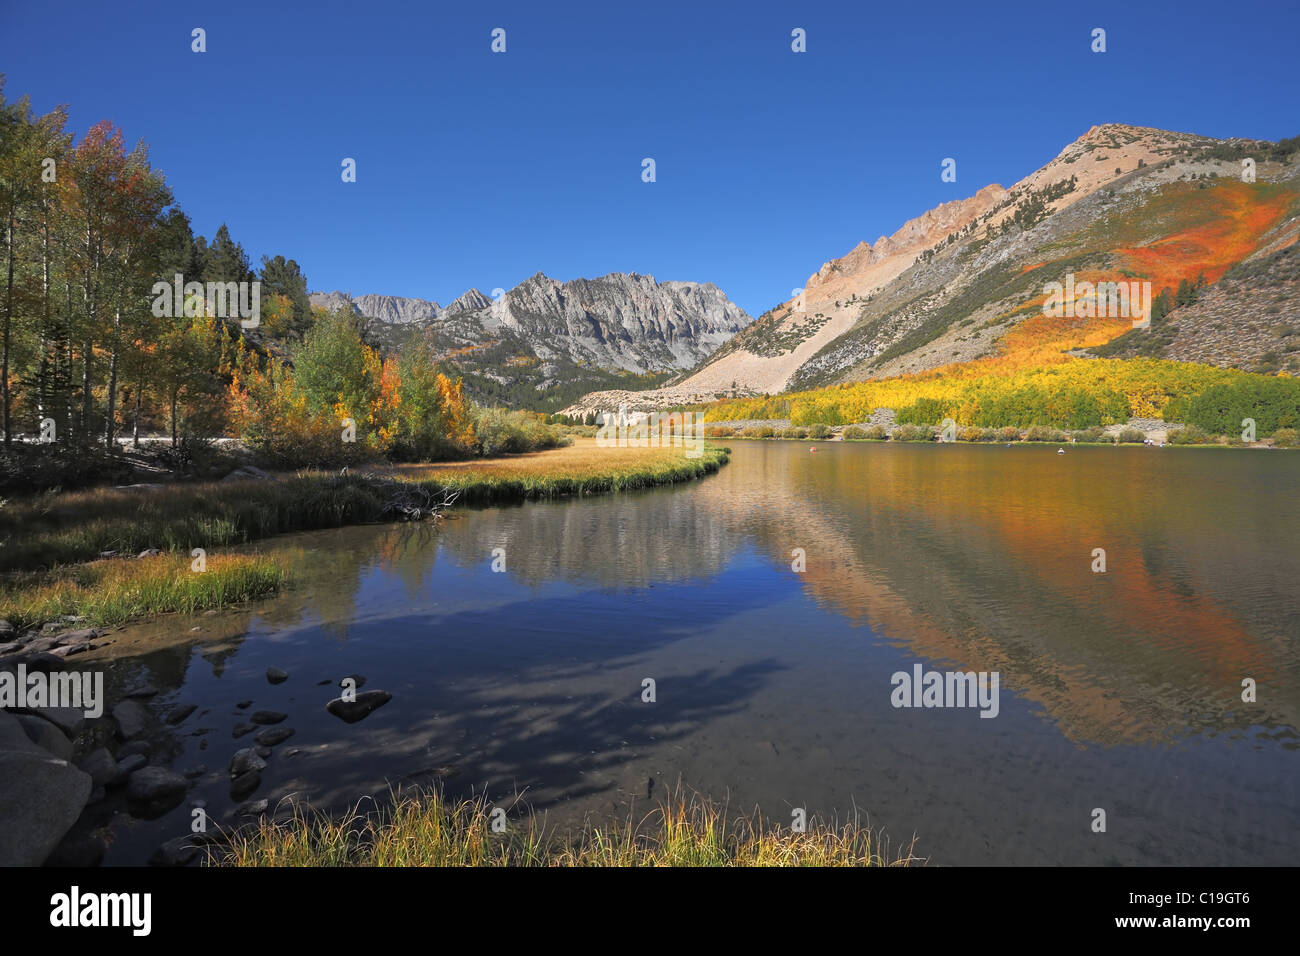 Mountains covered with orange and yellow bushes - Stock Image